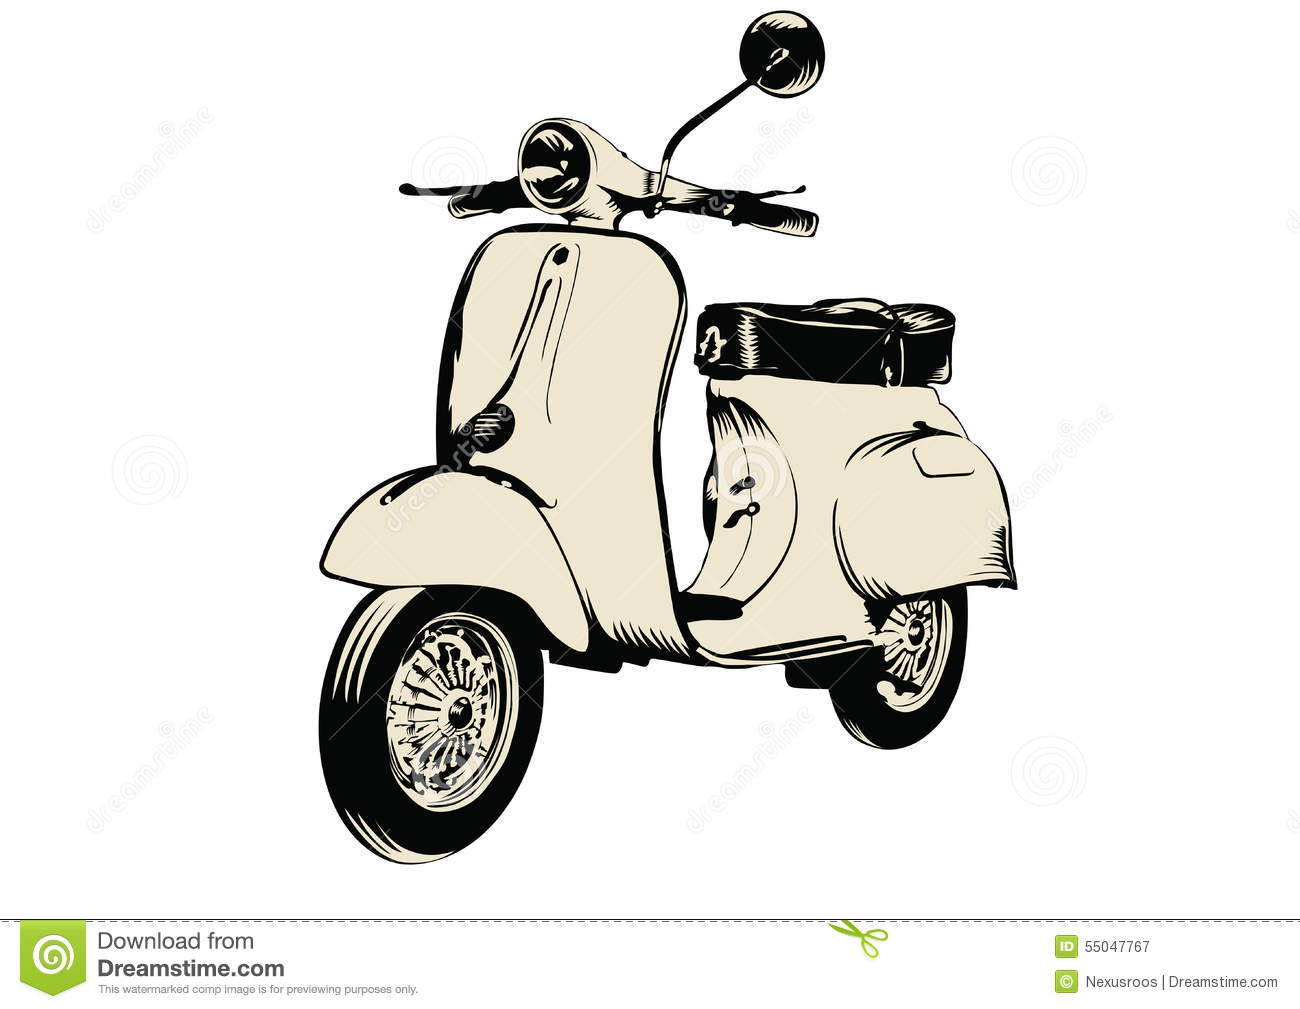 Vespa Roller Oldtimer Roller Stock Vector Illustration Of Vintage Motorroller 55047767